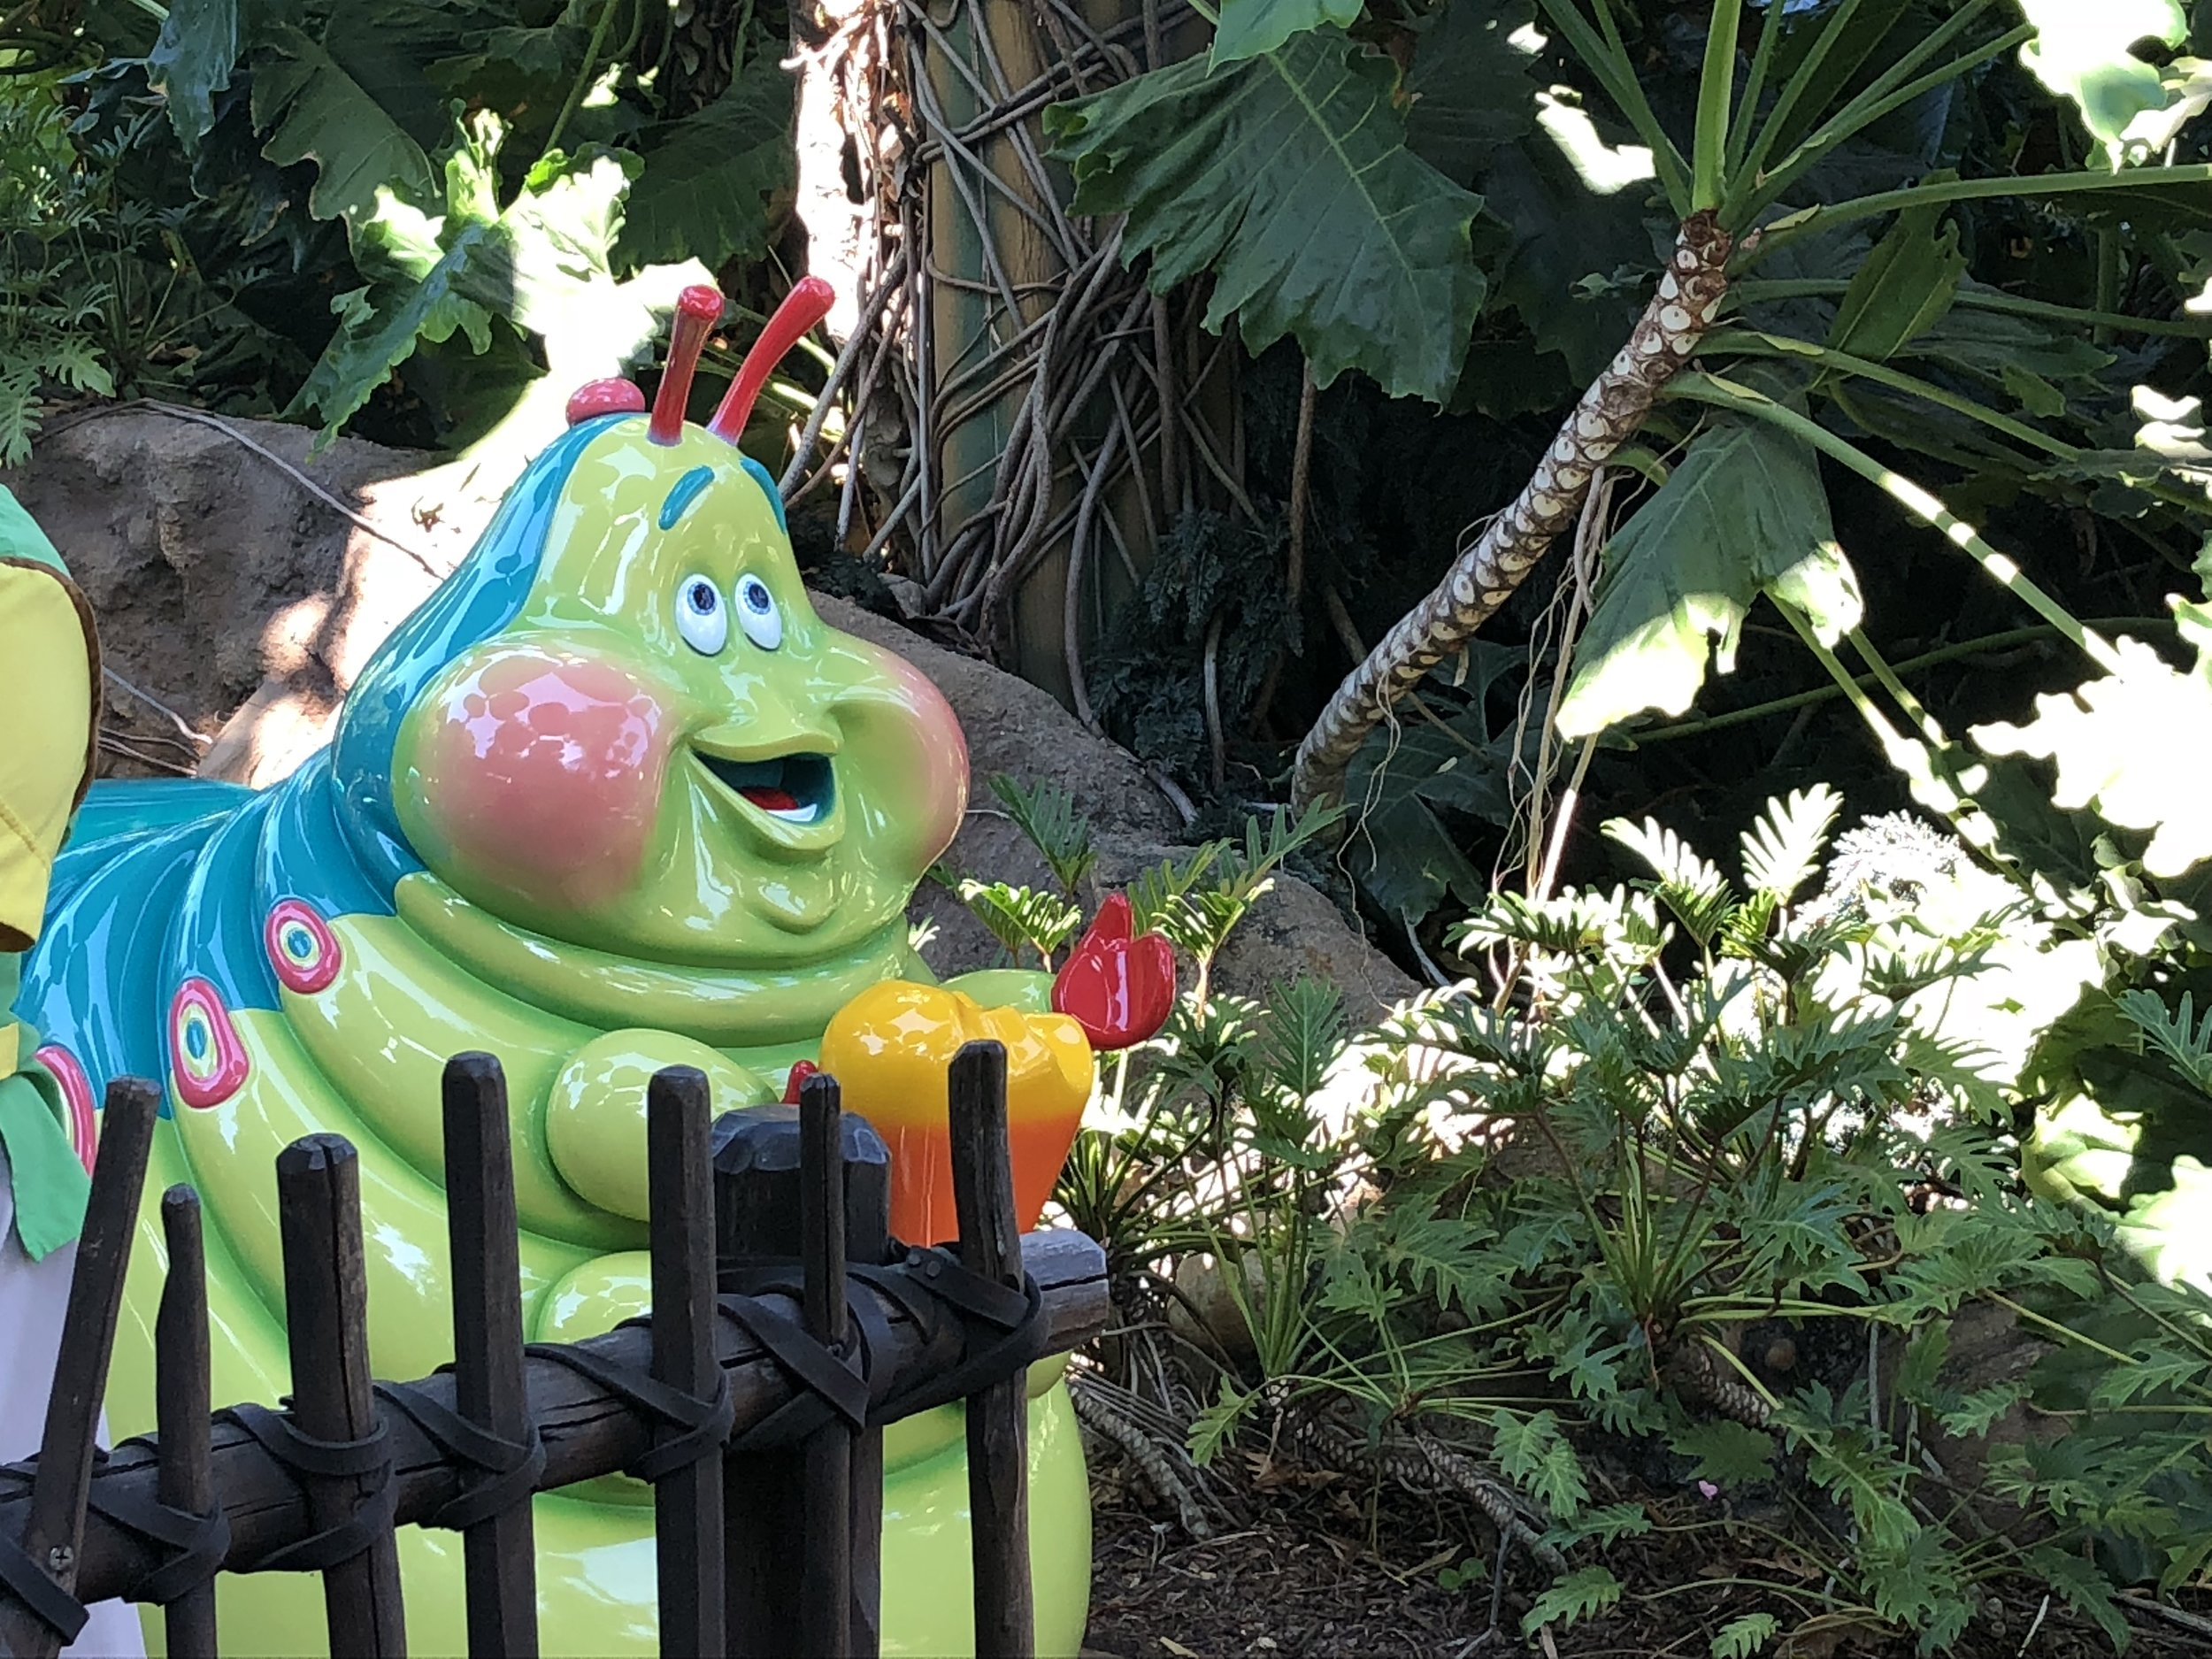 heimlichs chew chew train disneyland dca bugs land pixar